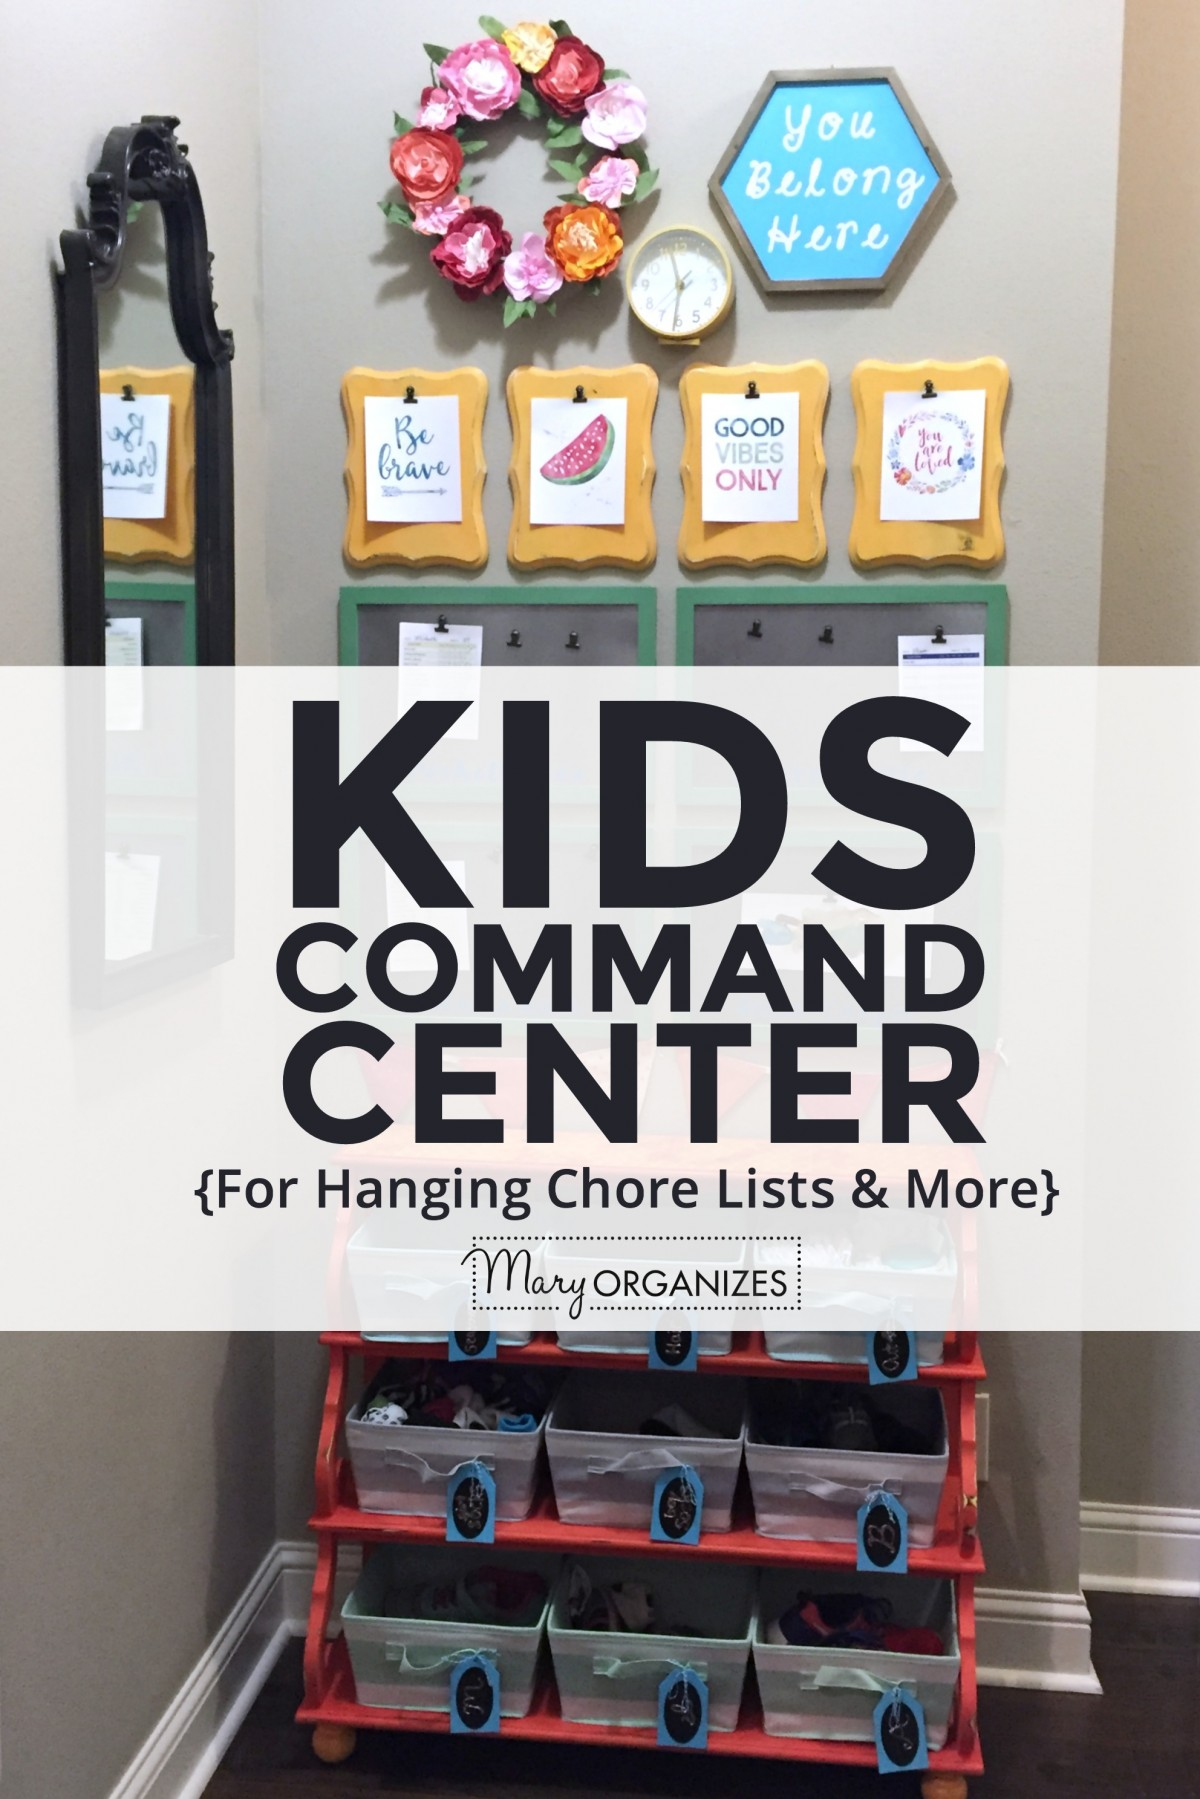 Kids Command Center - for hanging chore lists and more -v